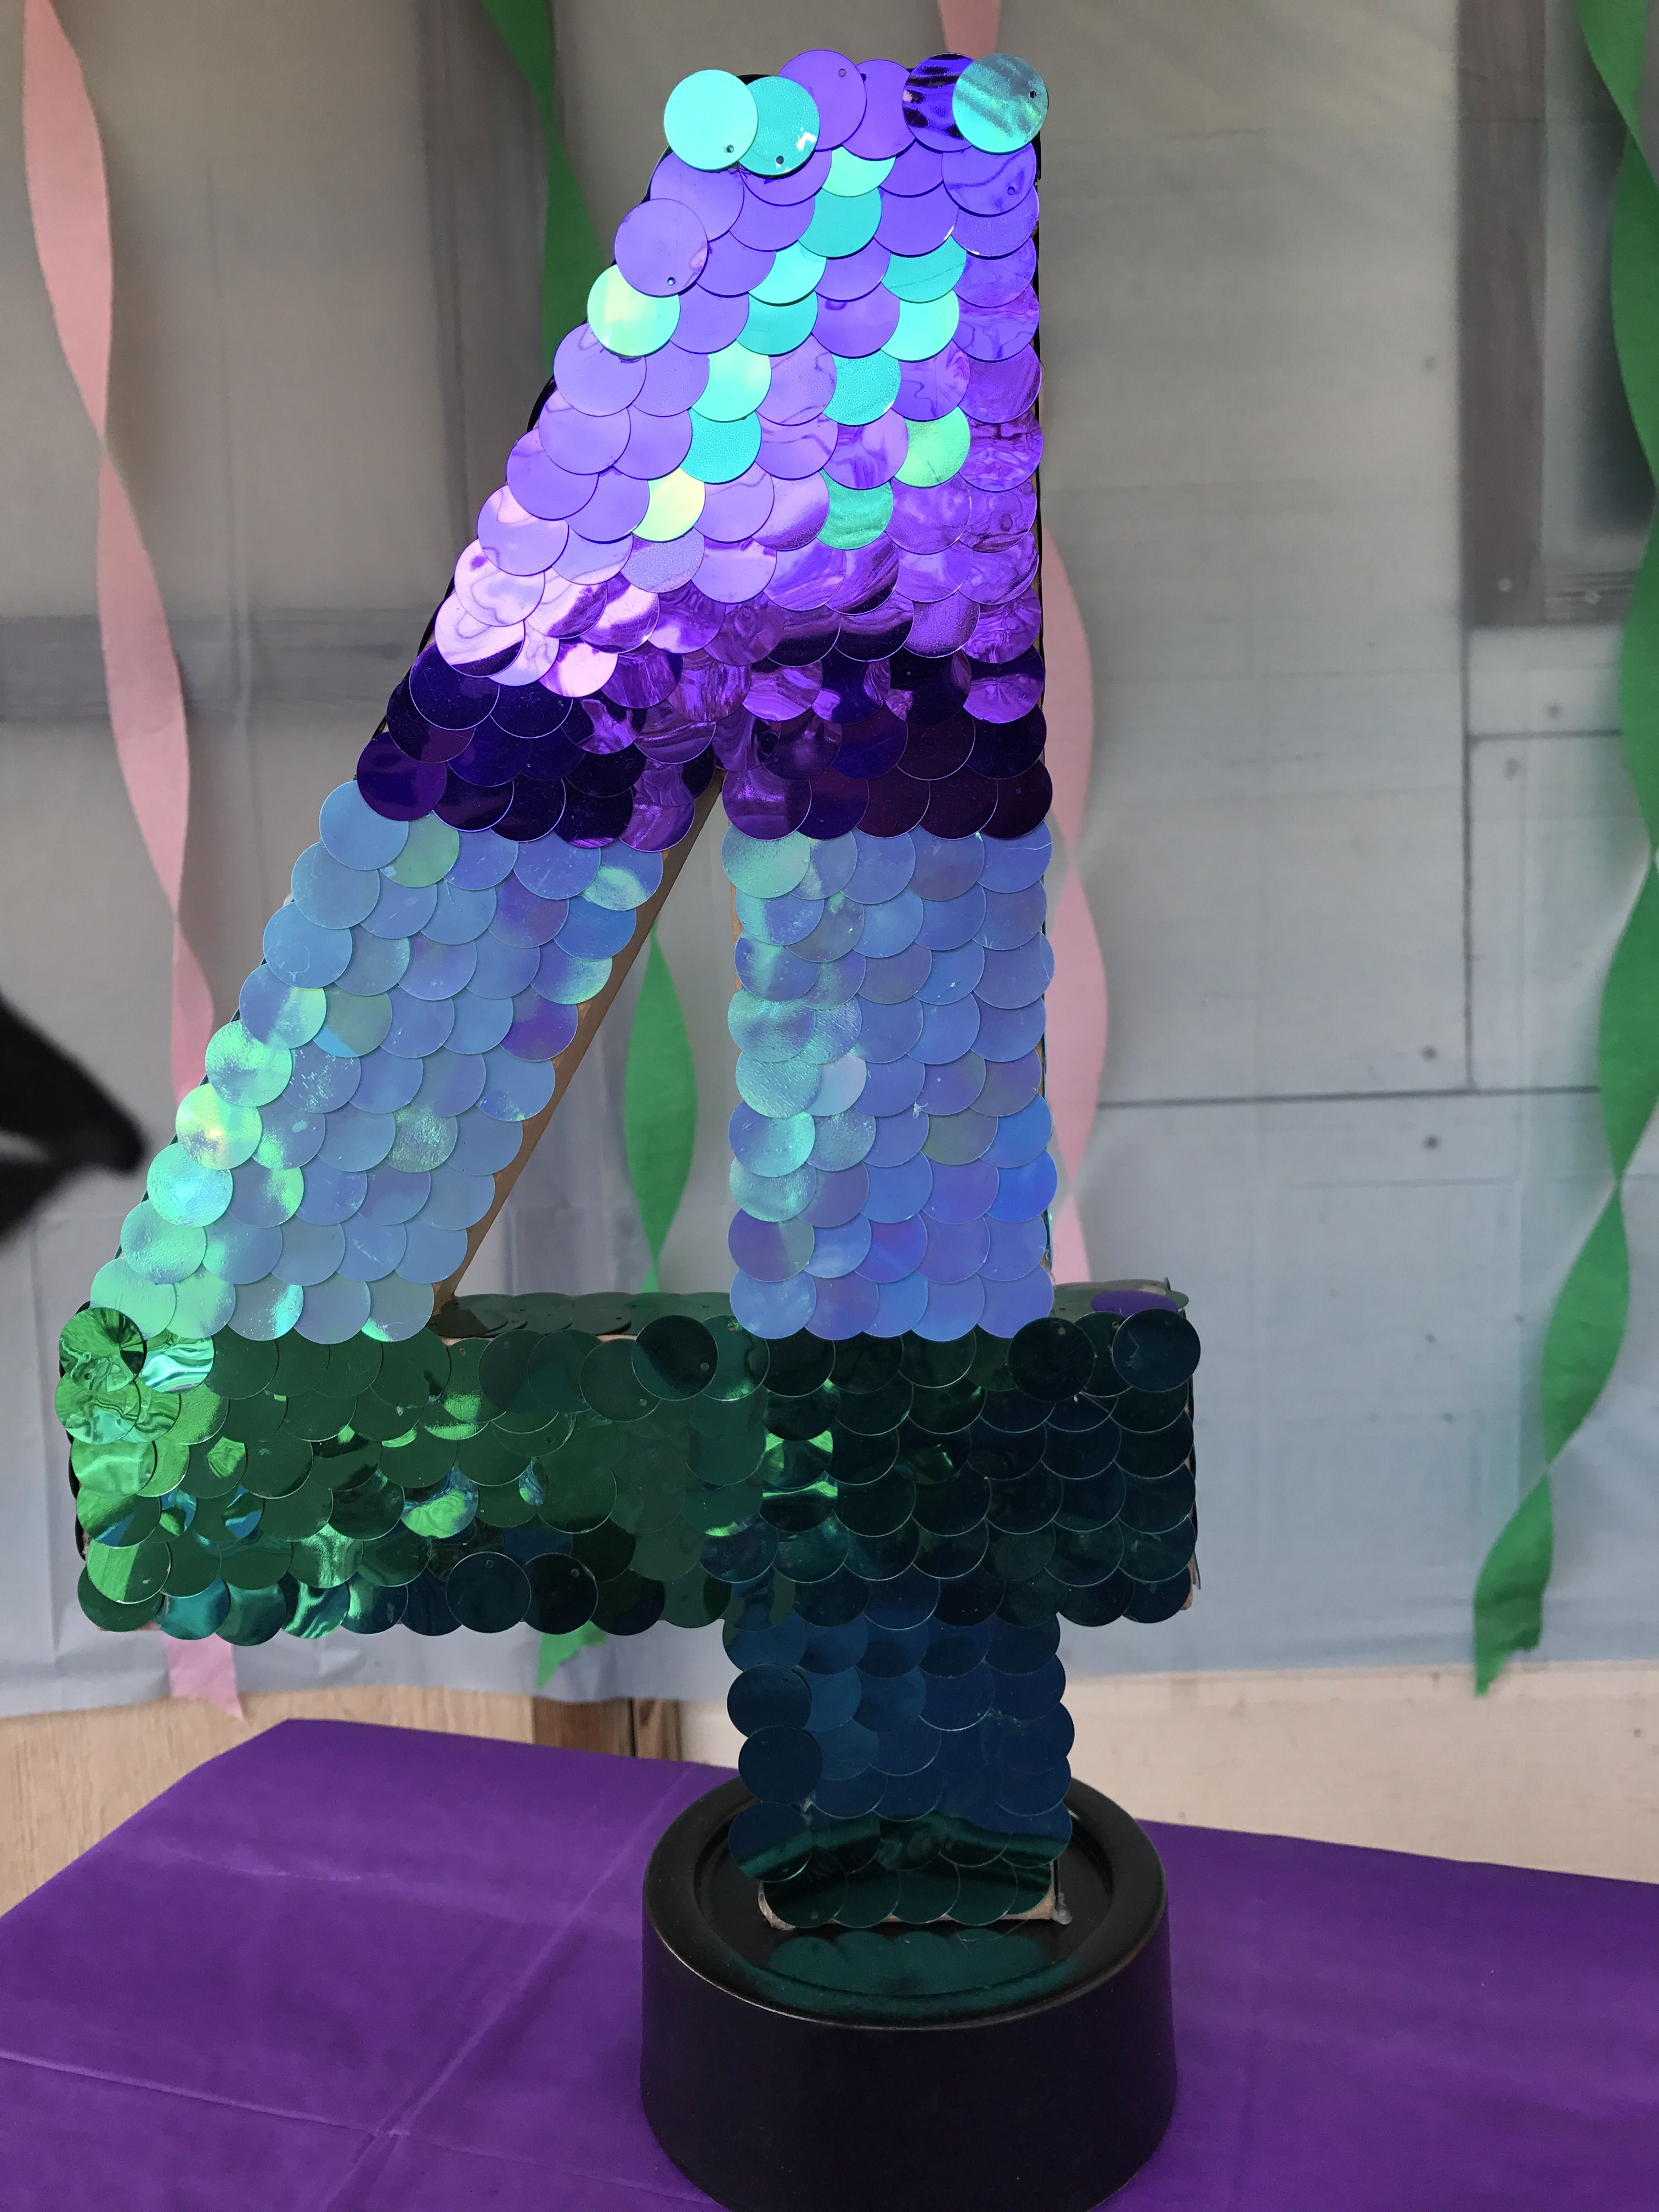 Number 4 Mermaid Party Decoration Hobby Lobby Mermaid Party Decorations Party Decorations Mermaid Party